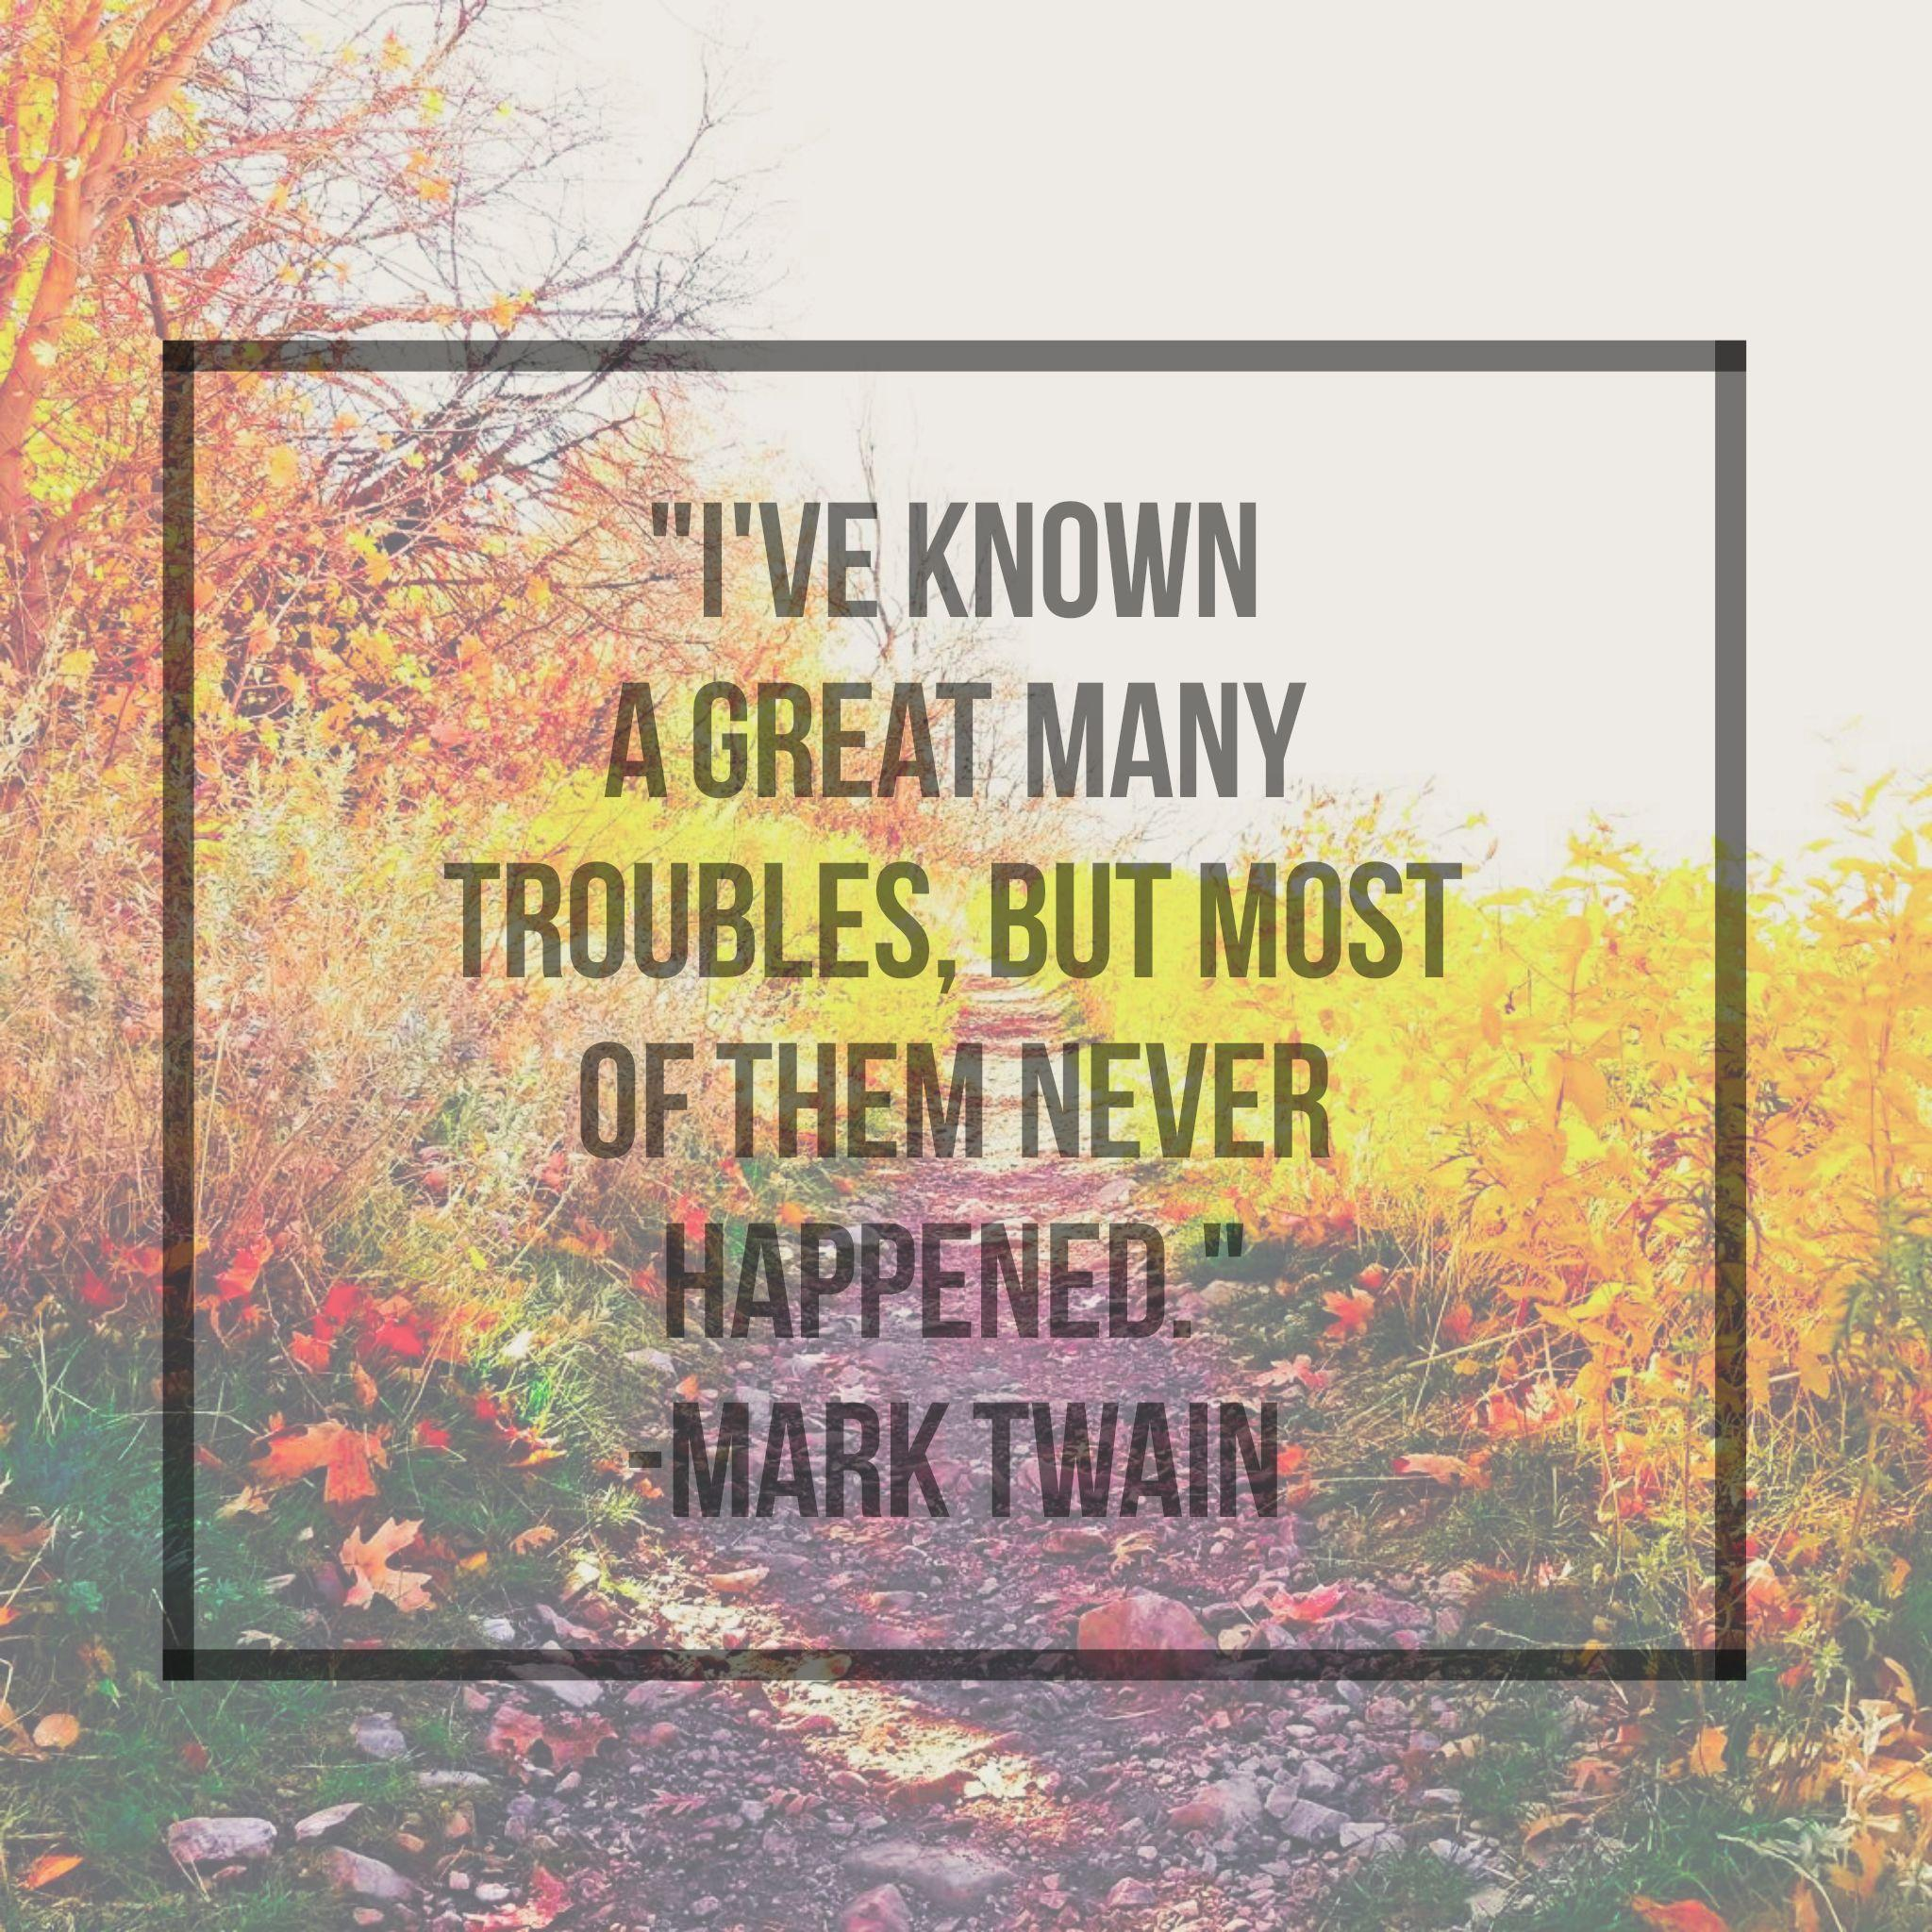 [Image] Saw this quote on another post and I loved it. The mind can be your biggest setback